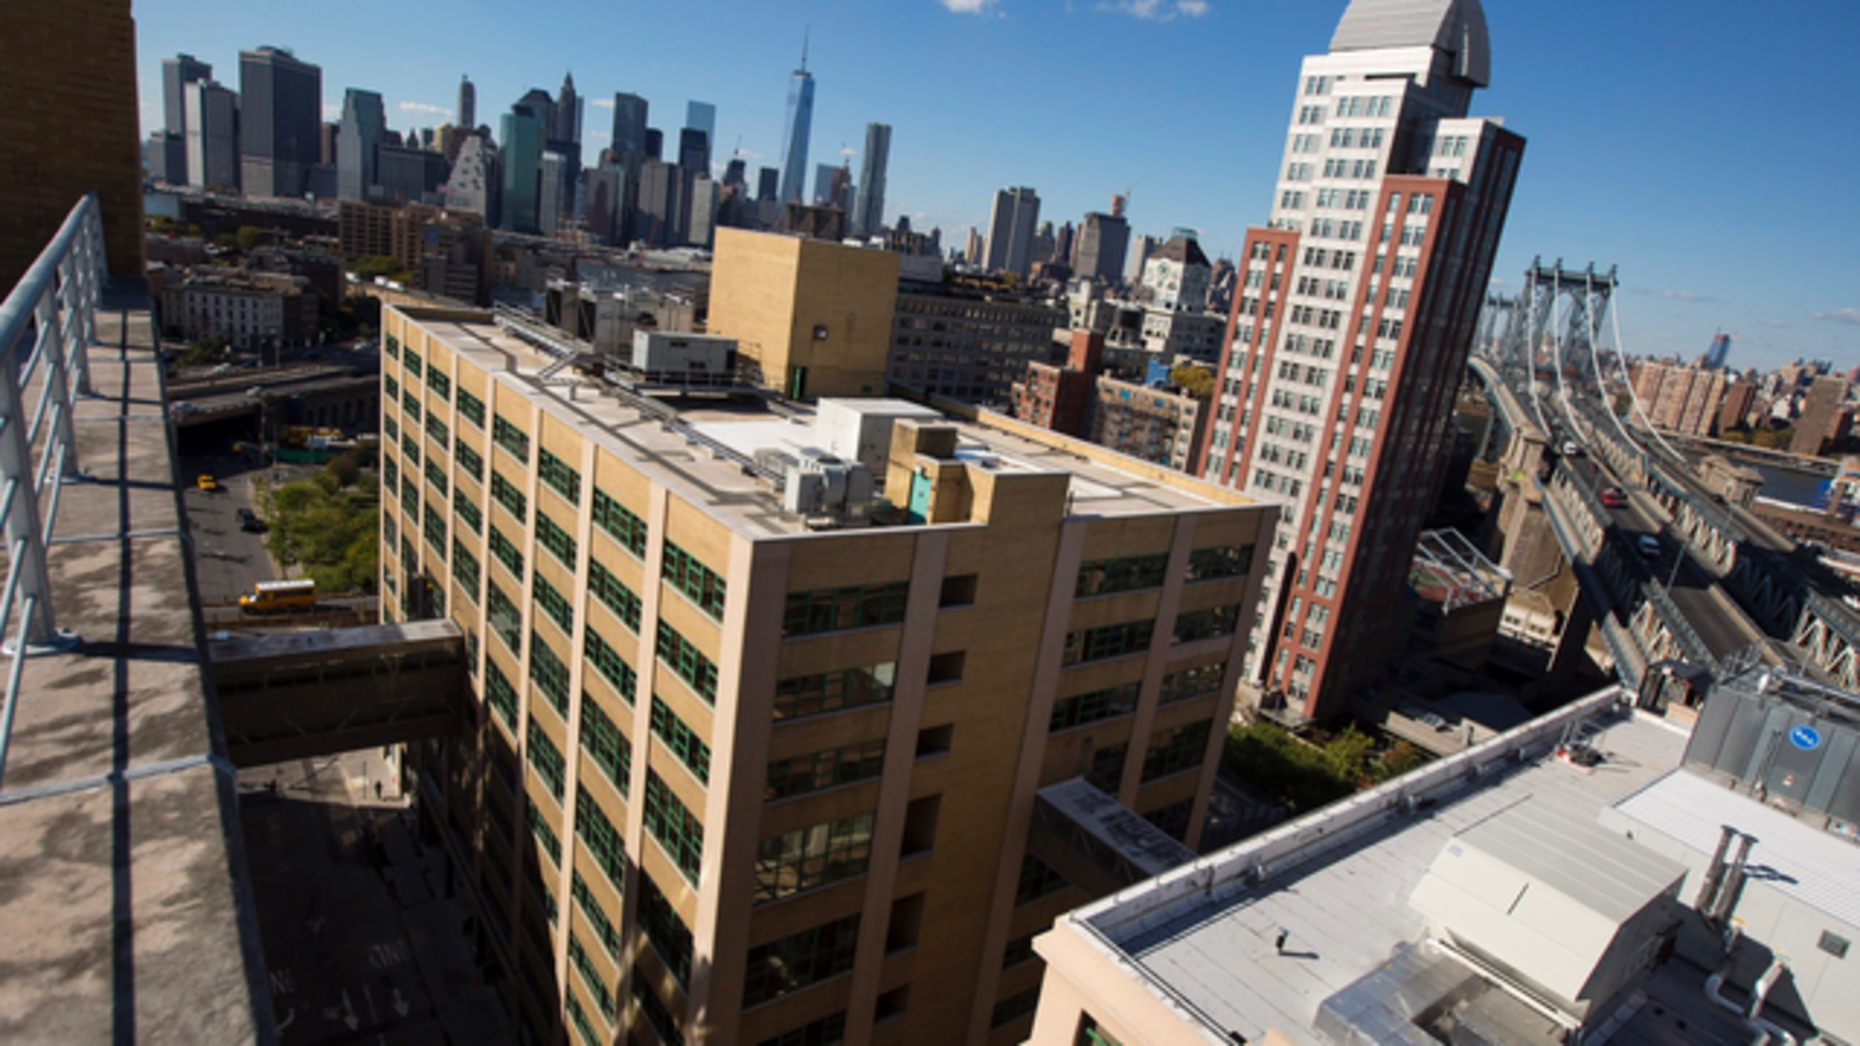 Parts of the Brooklyn neighborhood of Dumbo have been designated as opportunity zones. Photo: Bloomberg